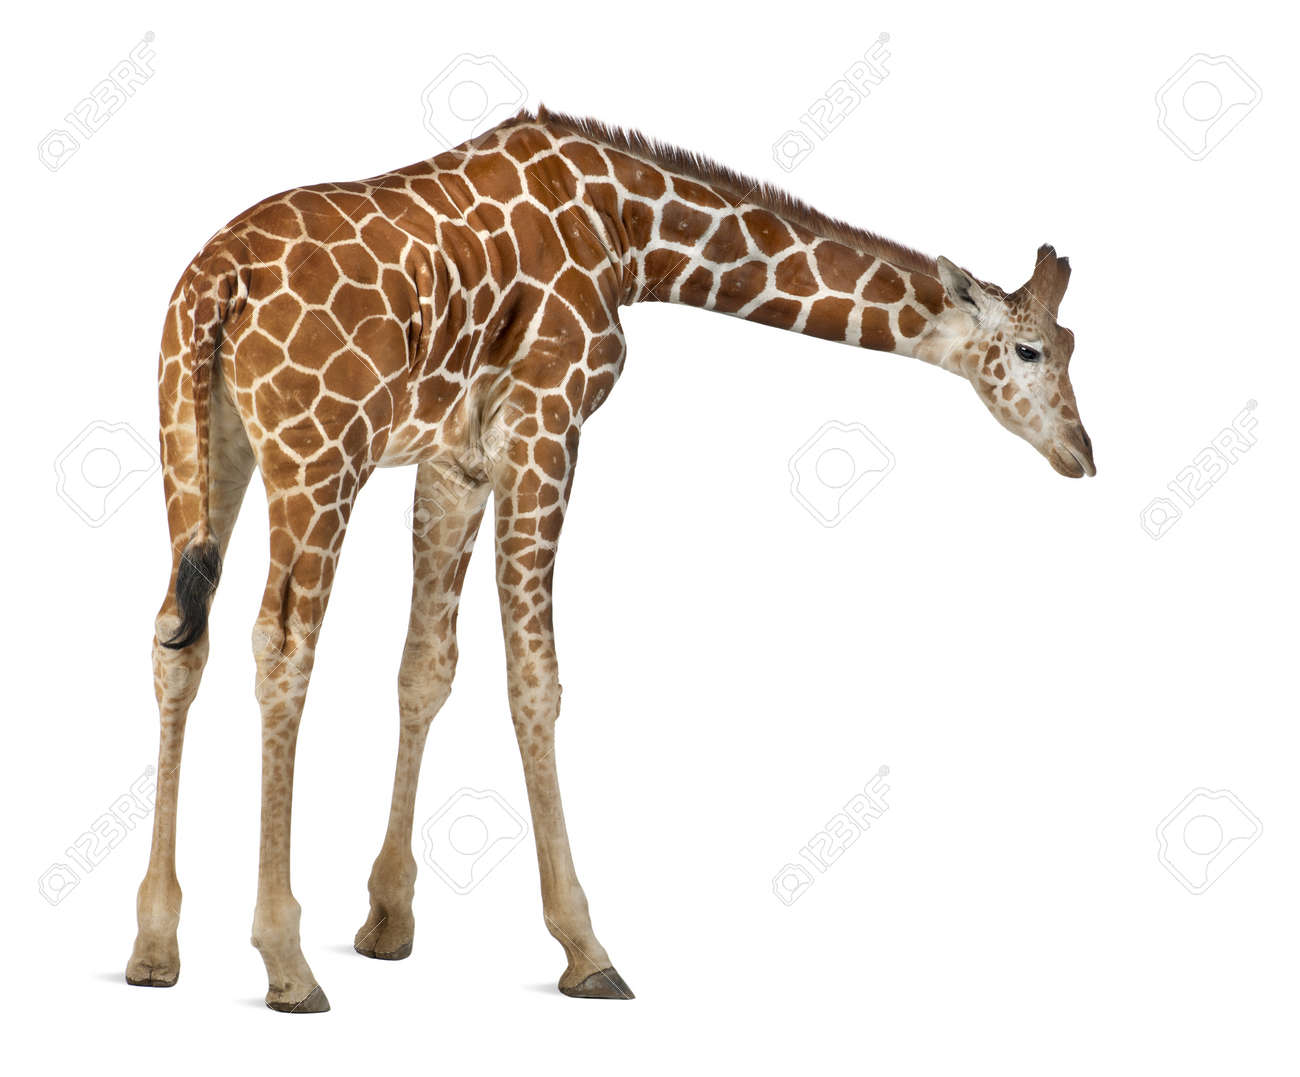 Somali Giraffe, commonly known as Reticulated Giraffe, Giraffa camelopardalis reticulata, 2 and a half years old standing against white background Stock Photo - 15251683